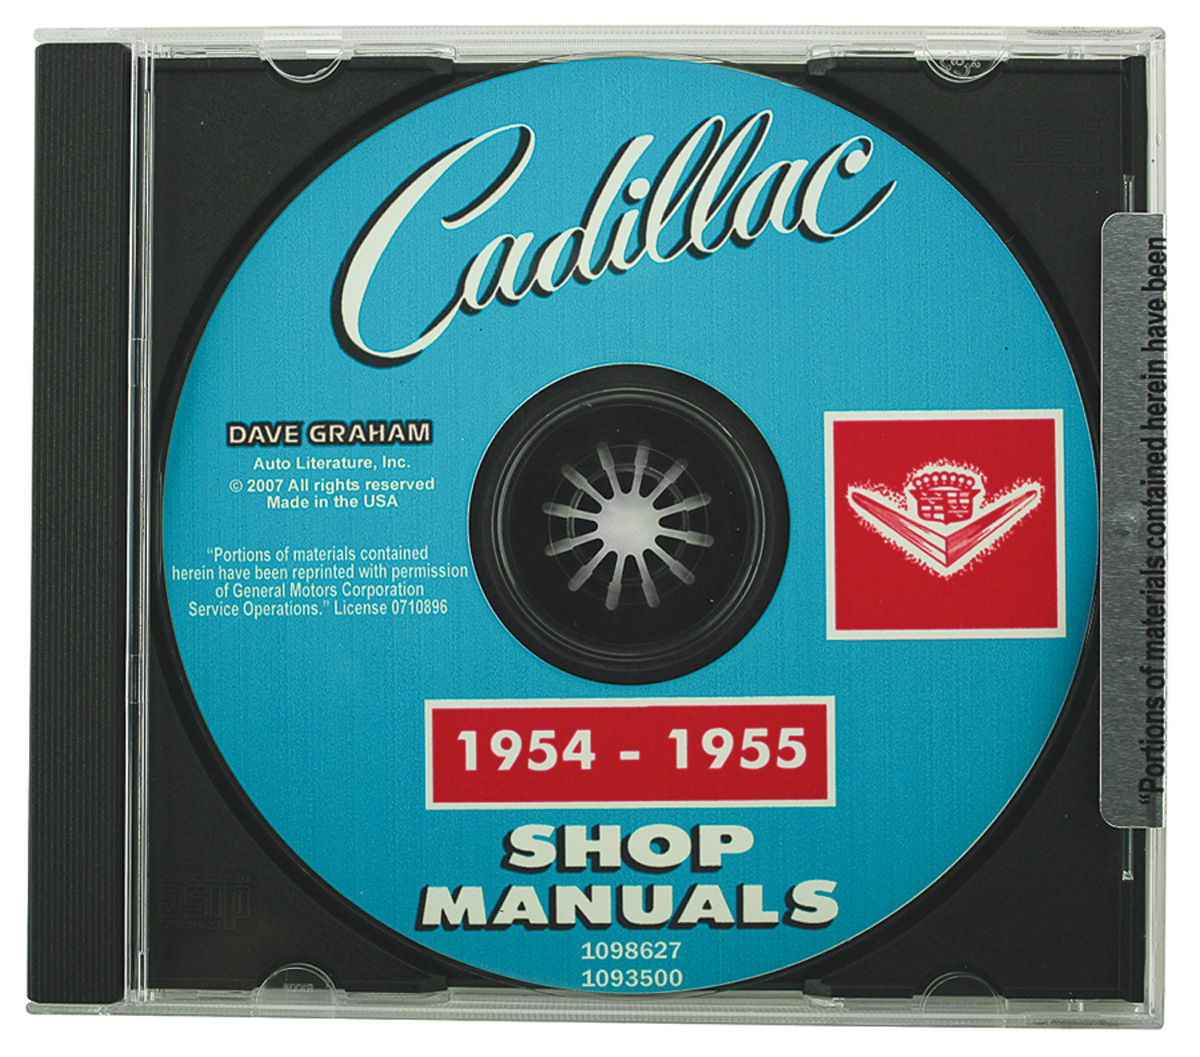 Photo of Factory Shop Manual CD-ROM